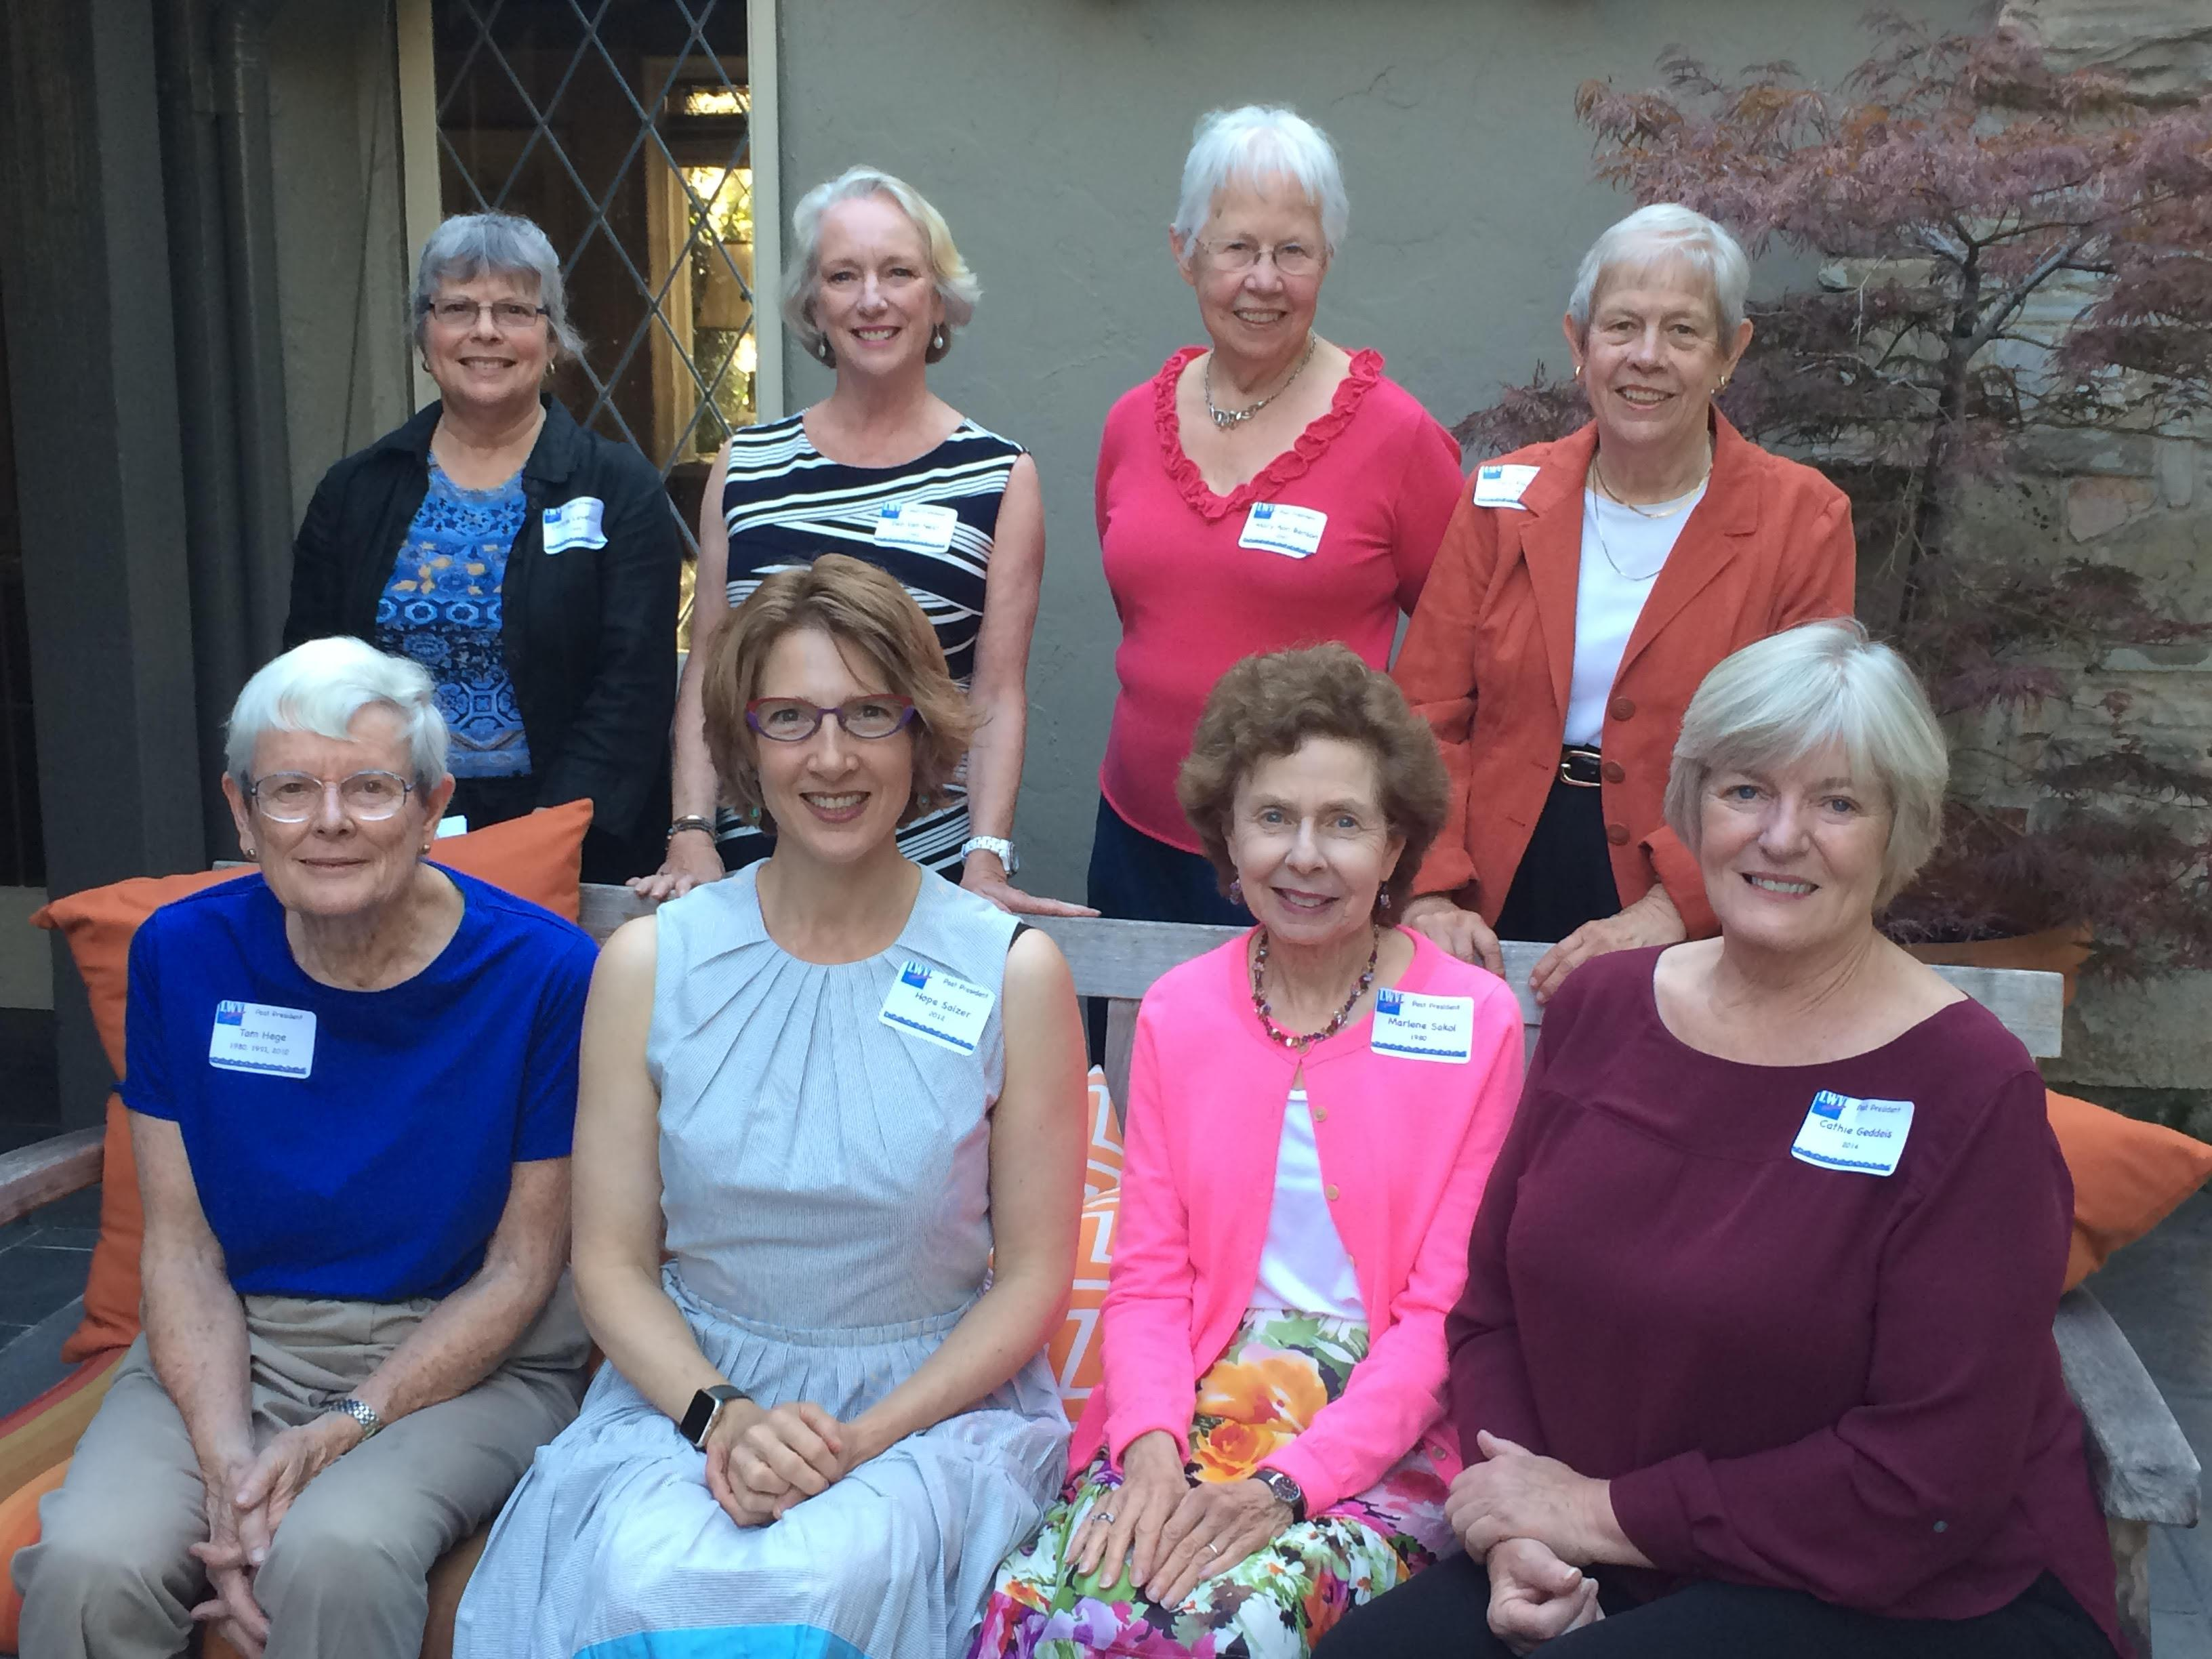 Past LWVP Presidents